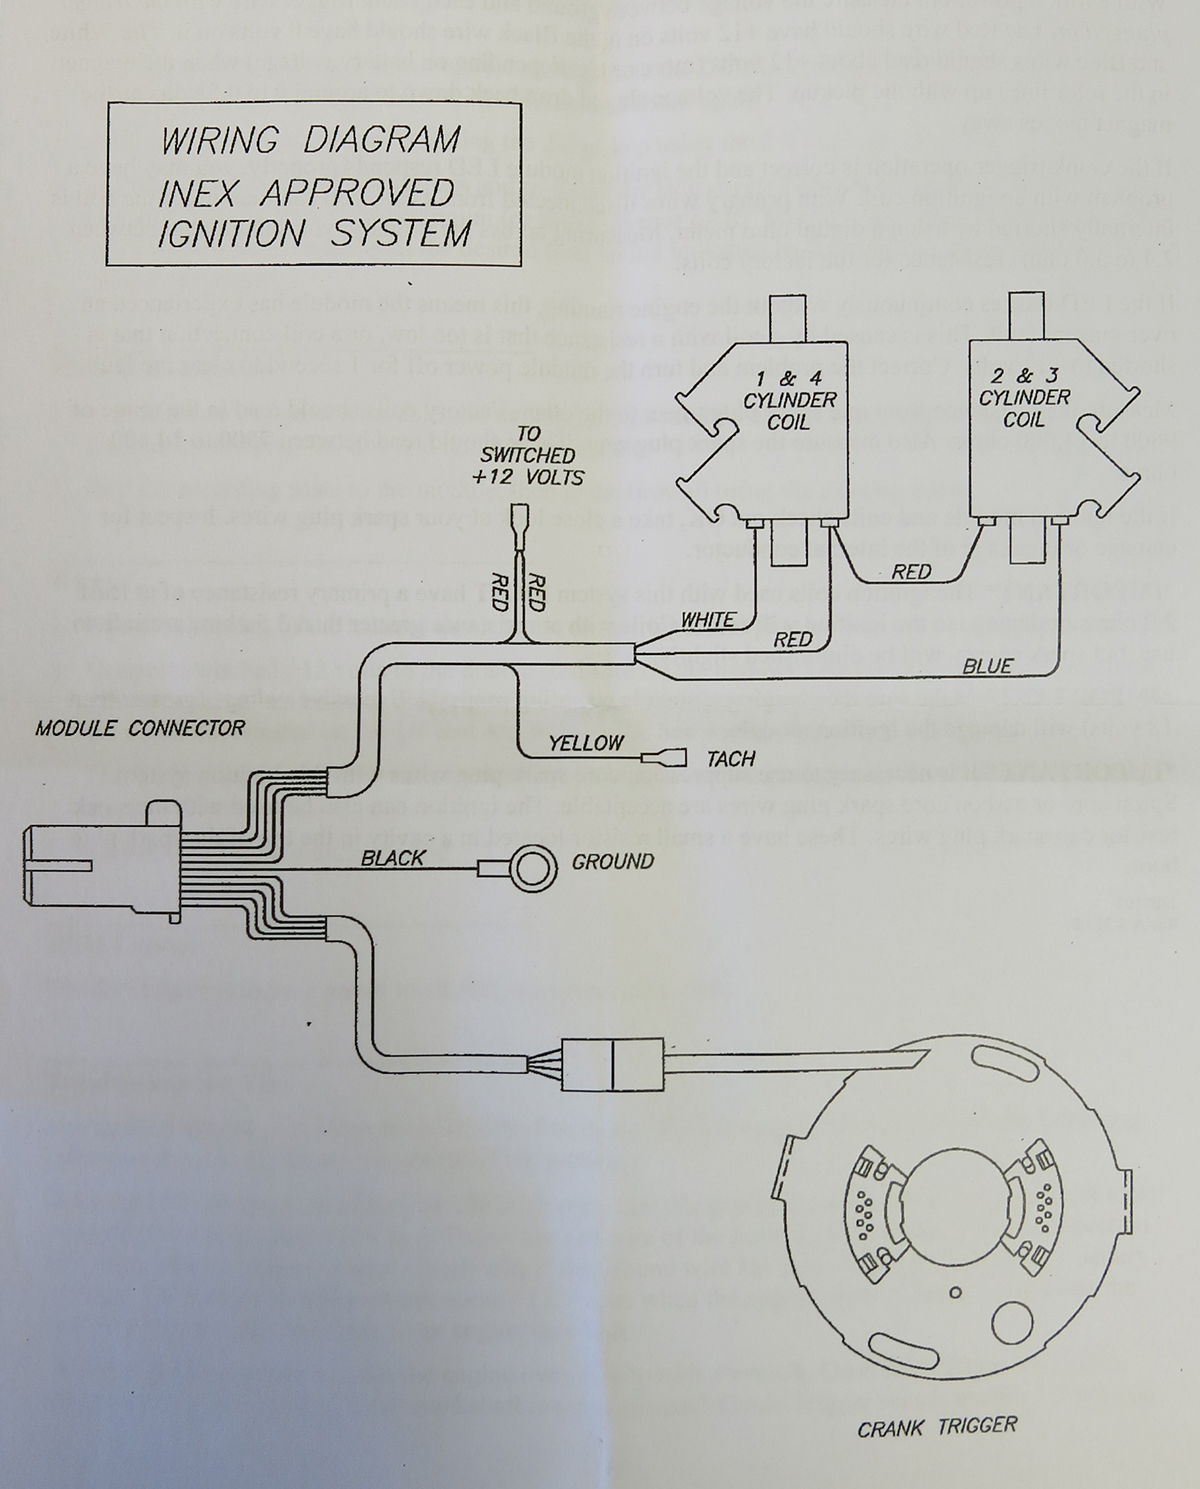 600 Legend Race Car Wiring Schematics Diagram Basic For Andrews Motorsports Technical Information Ignition